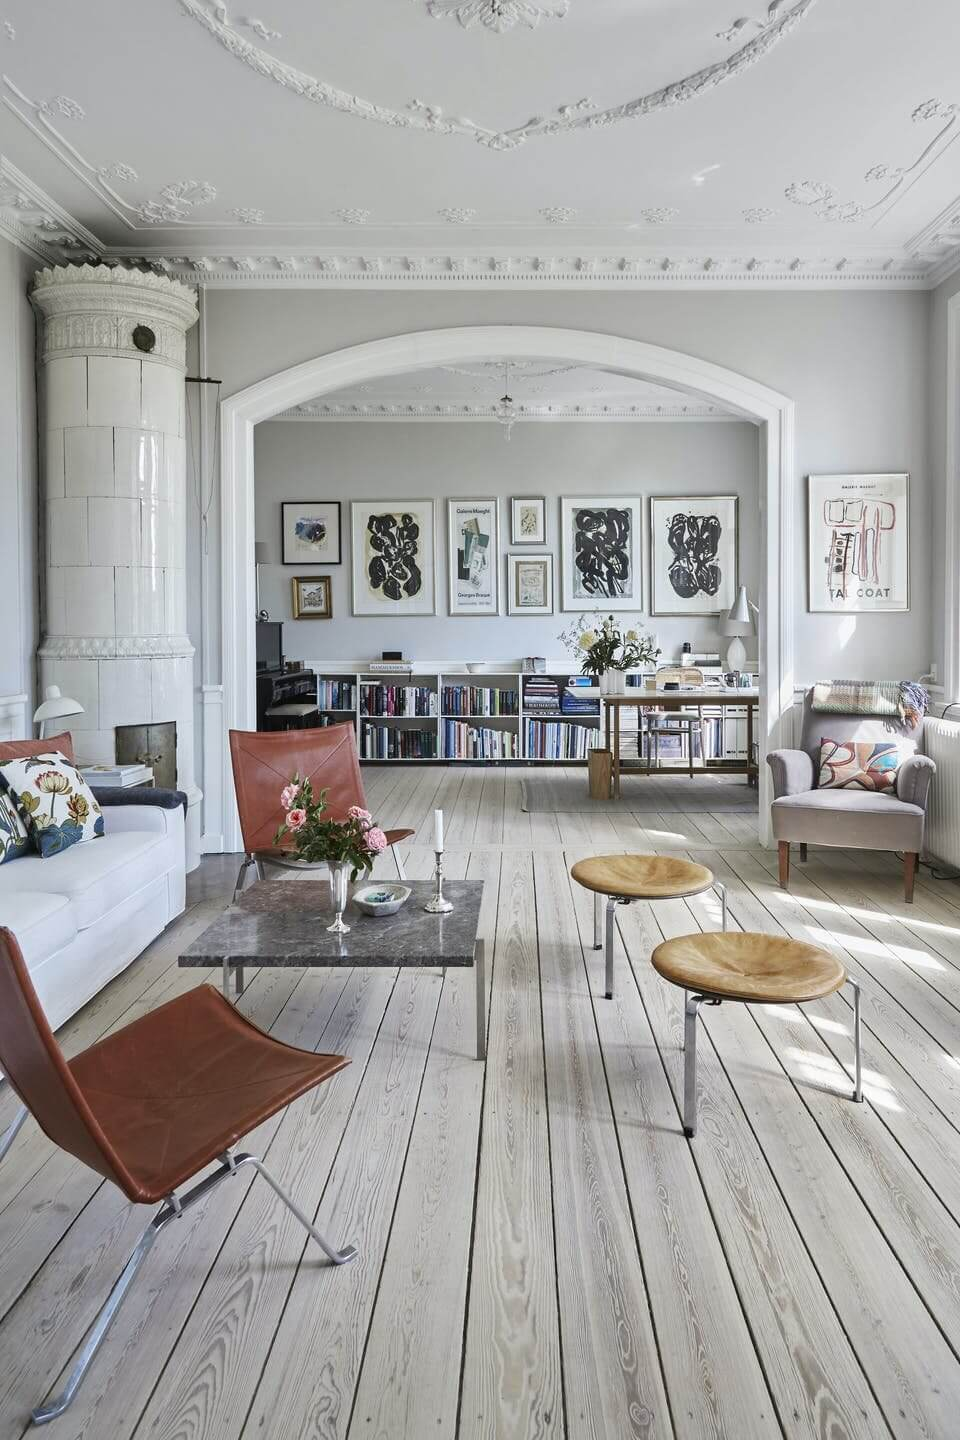 An Interior Stylist's Calm and Natural Home in Denmark